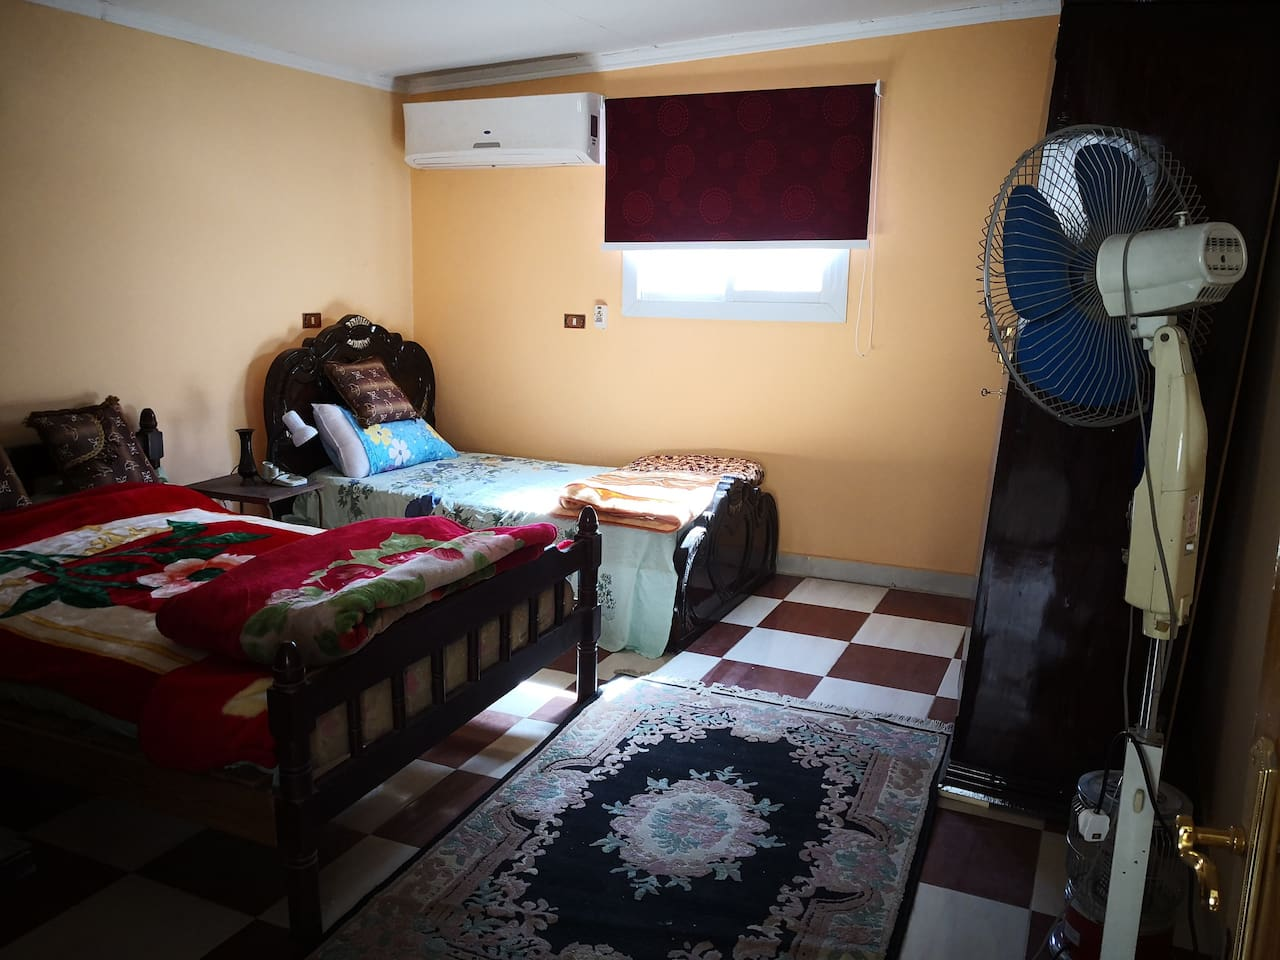 Bedroom with 2 beds and split air conditioner, 2 closet, desk, big TV, stand fan